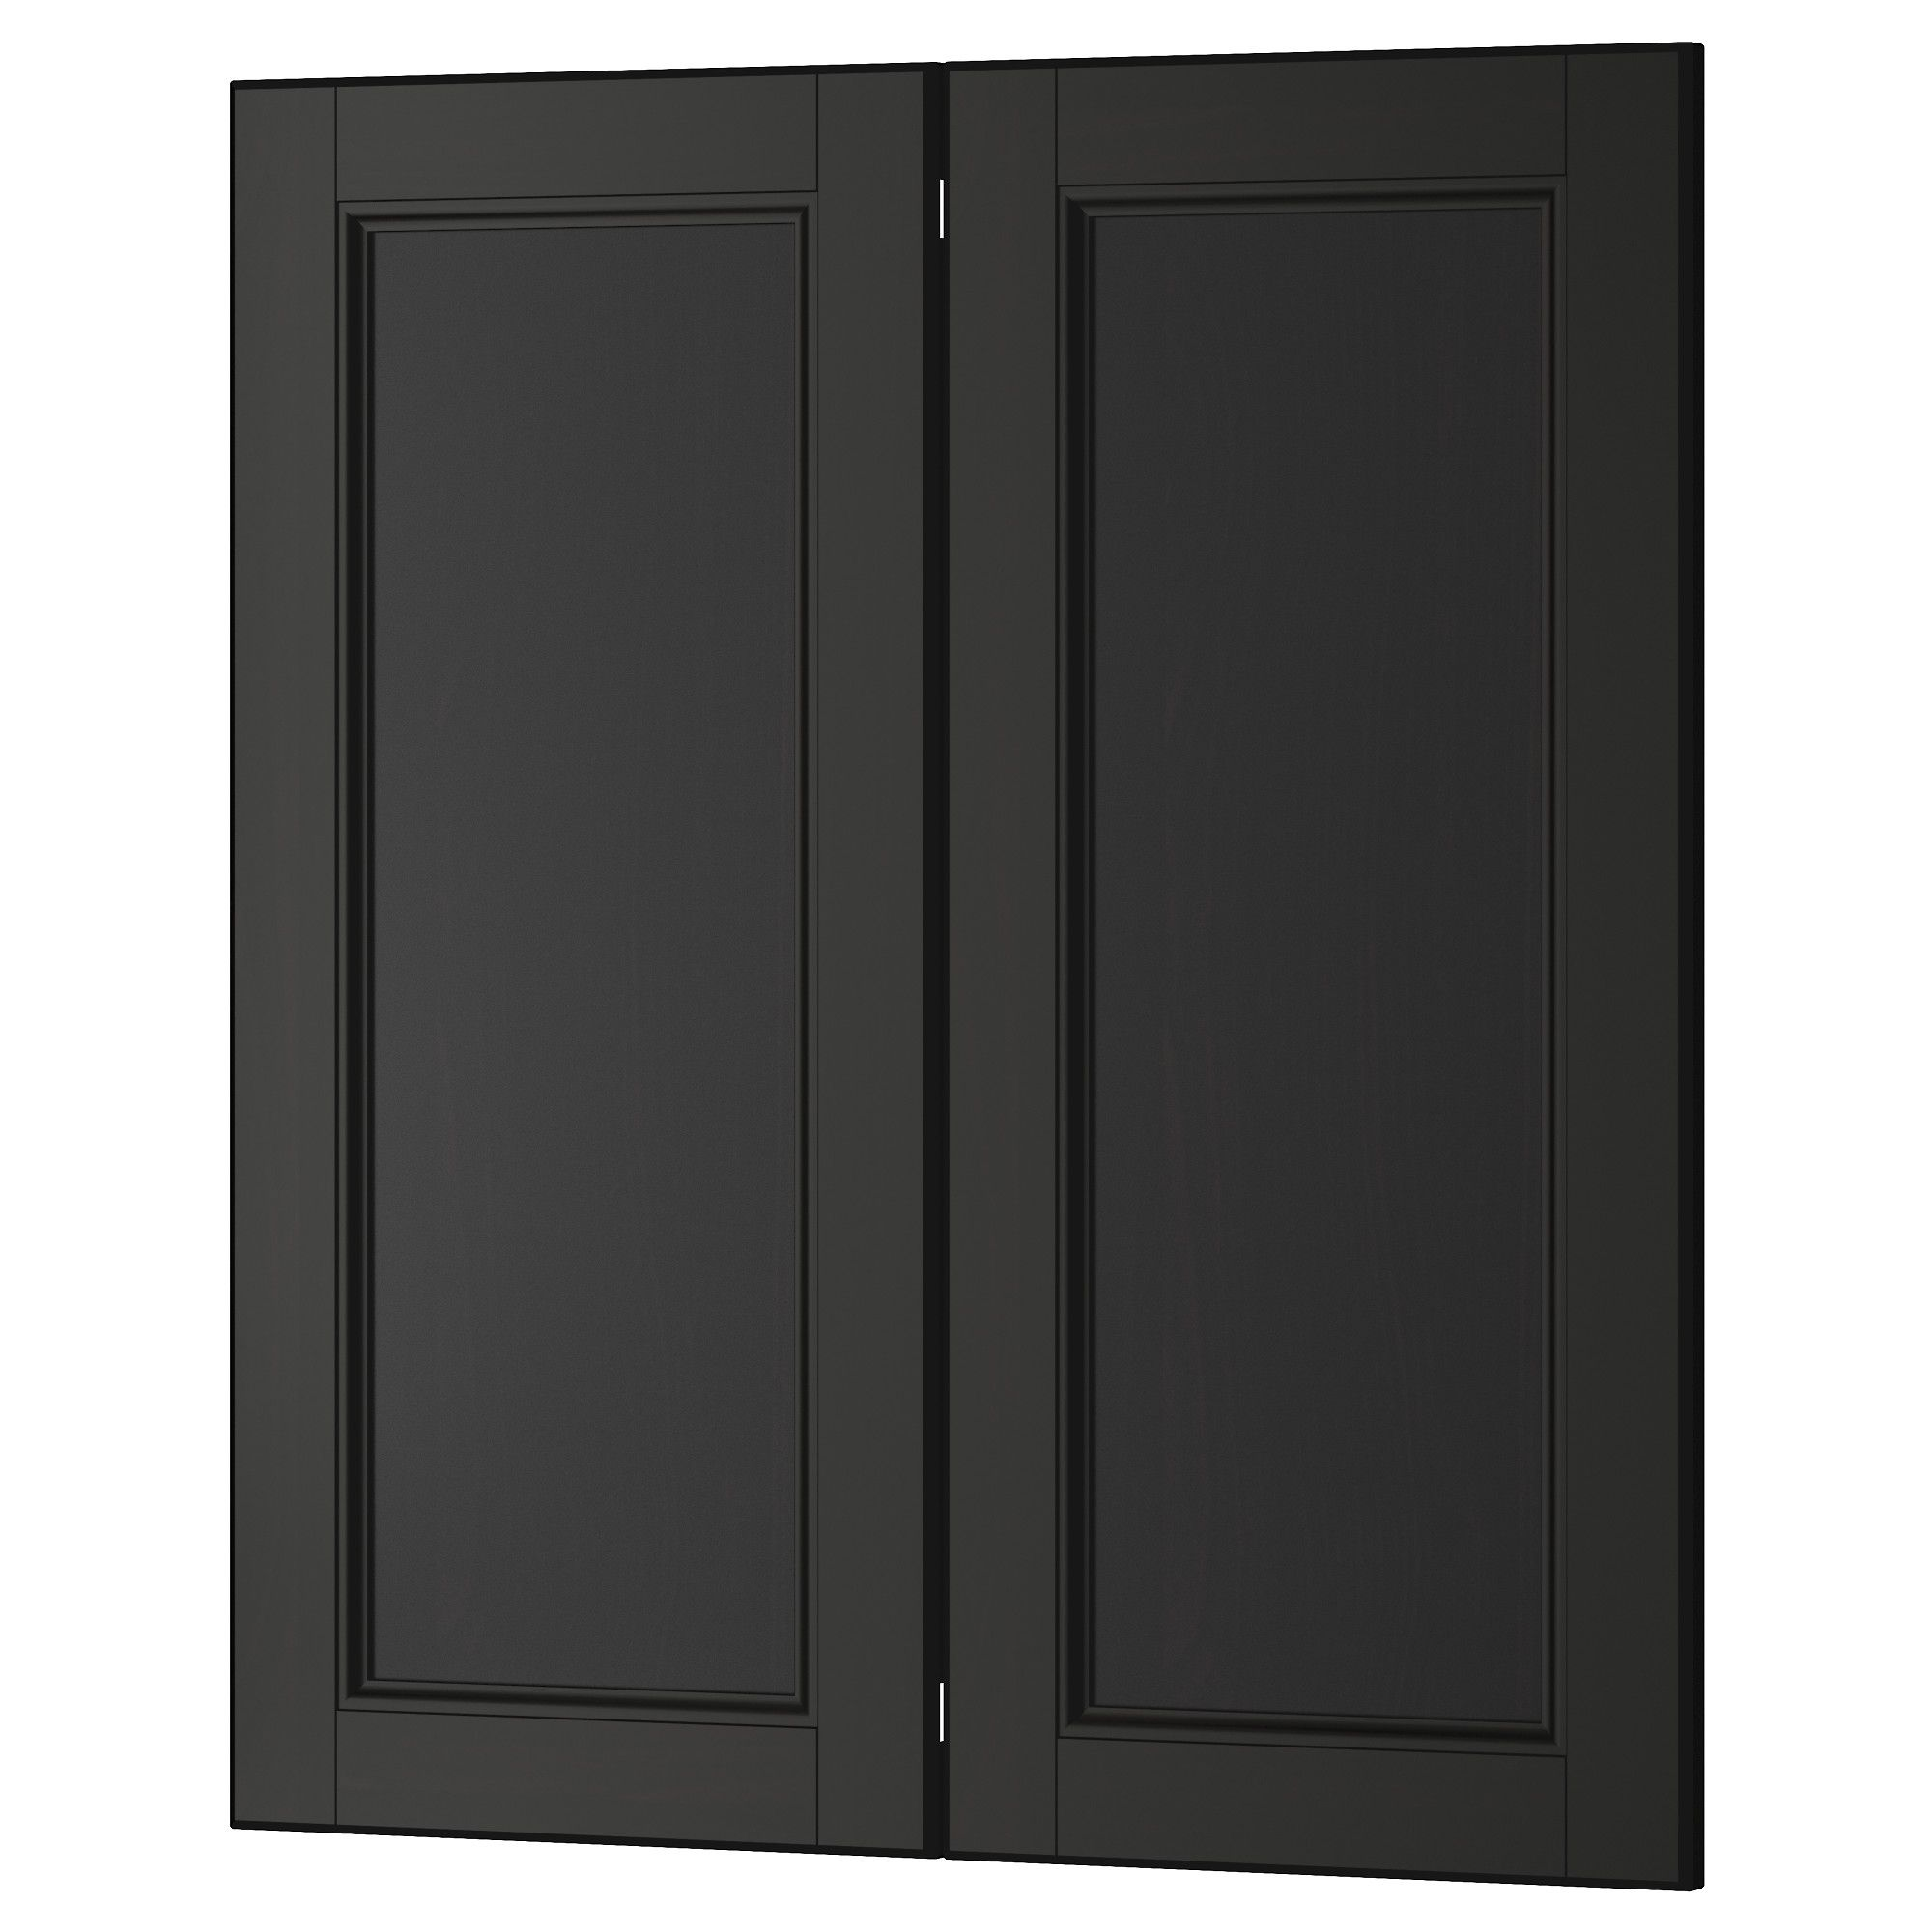 Kitchen cabinet tremendous corner base sink cabinet with half moon - Laxarby 2 P Door Corner Base Cabinet Set Black Brown